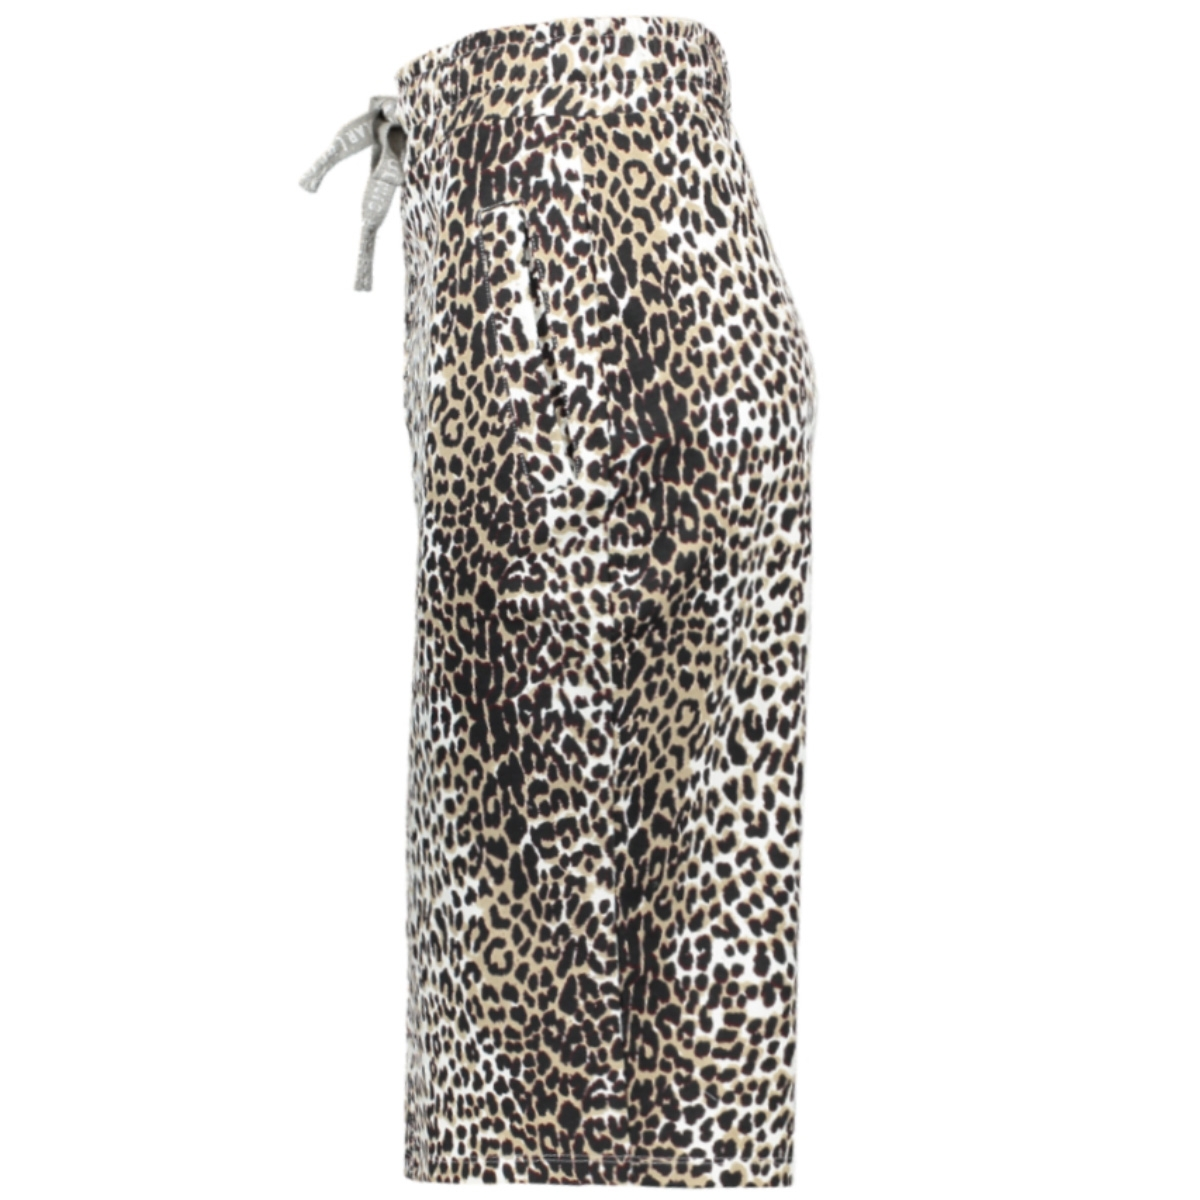 skirt leopard 20 111 9103 10 days rok kit